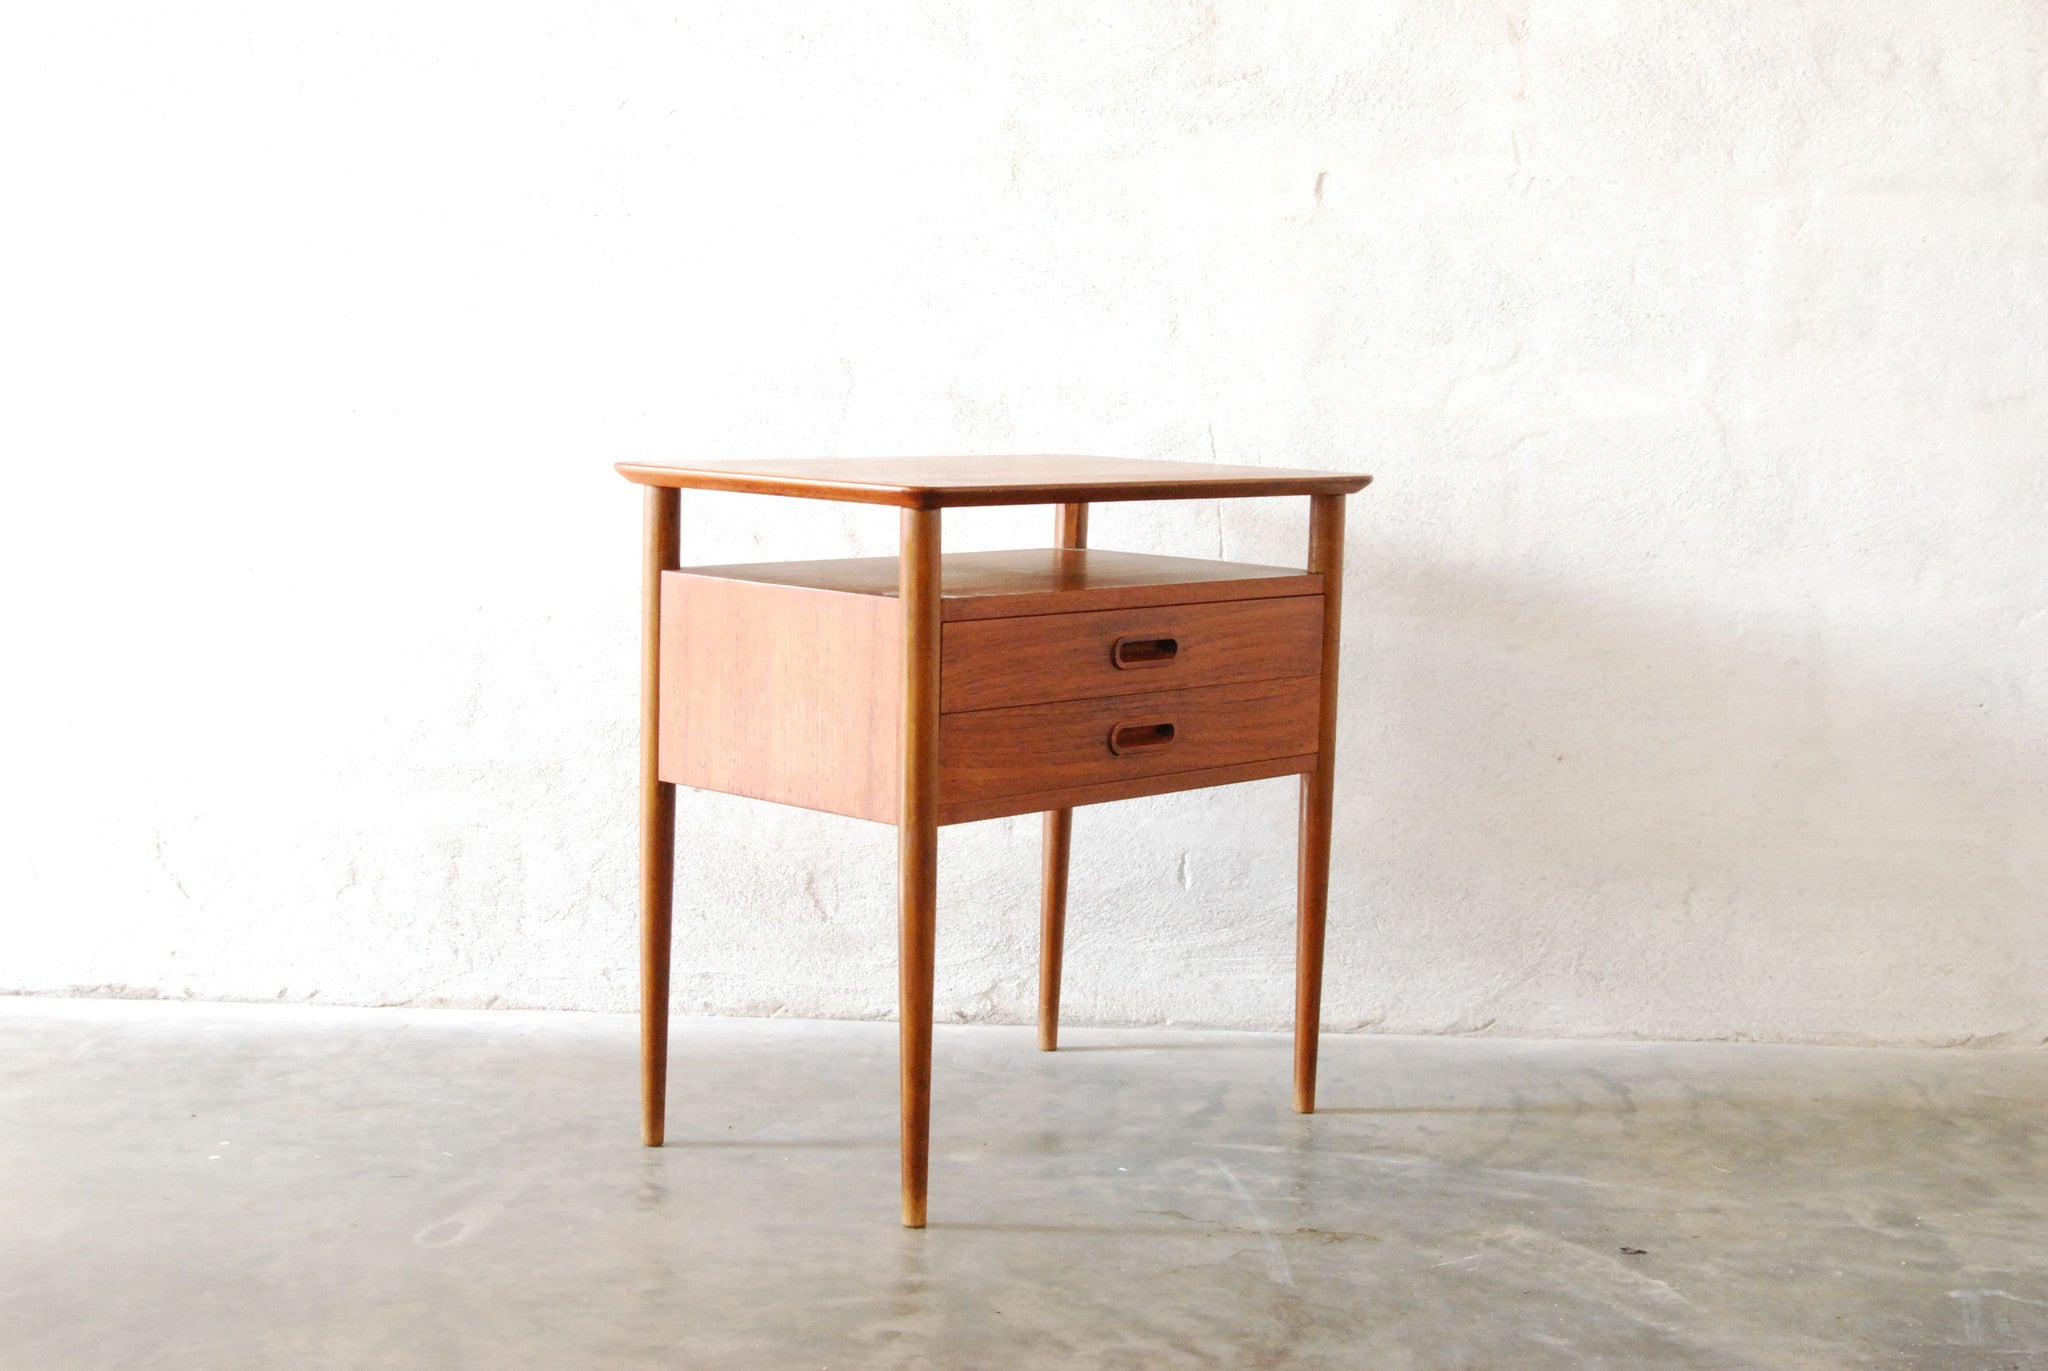 Chase & Sorensen Side table / bedside table in teak